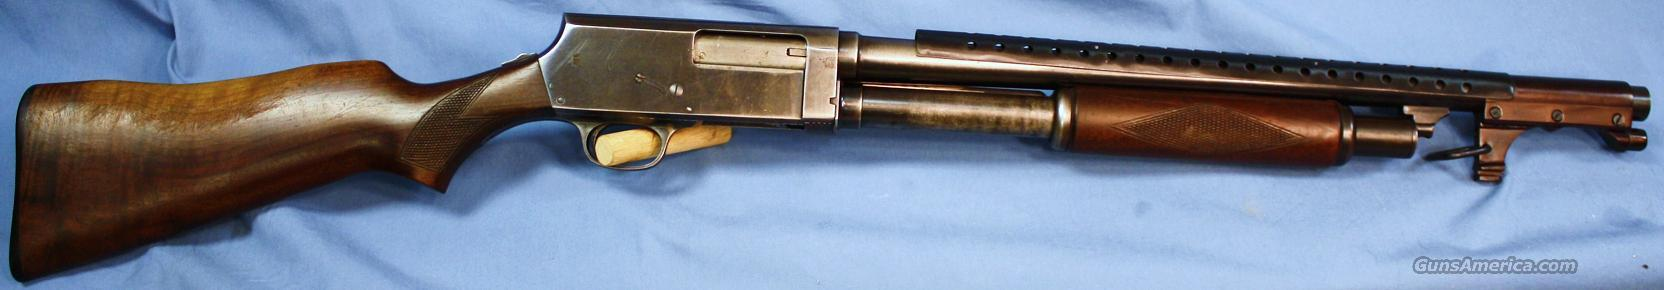 wards western field model 30 pump action trench for sale